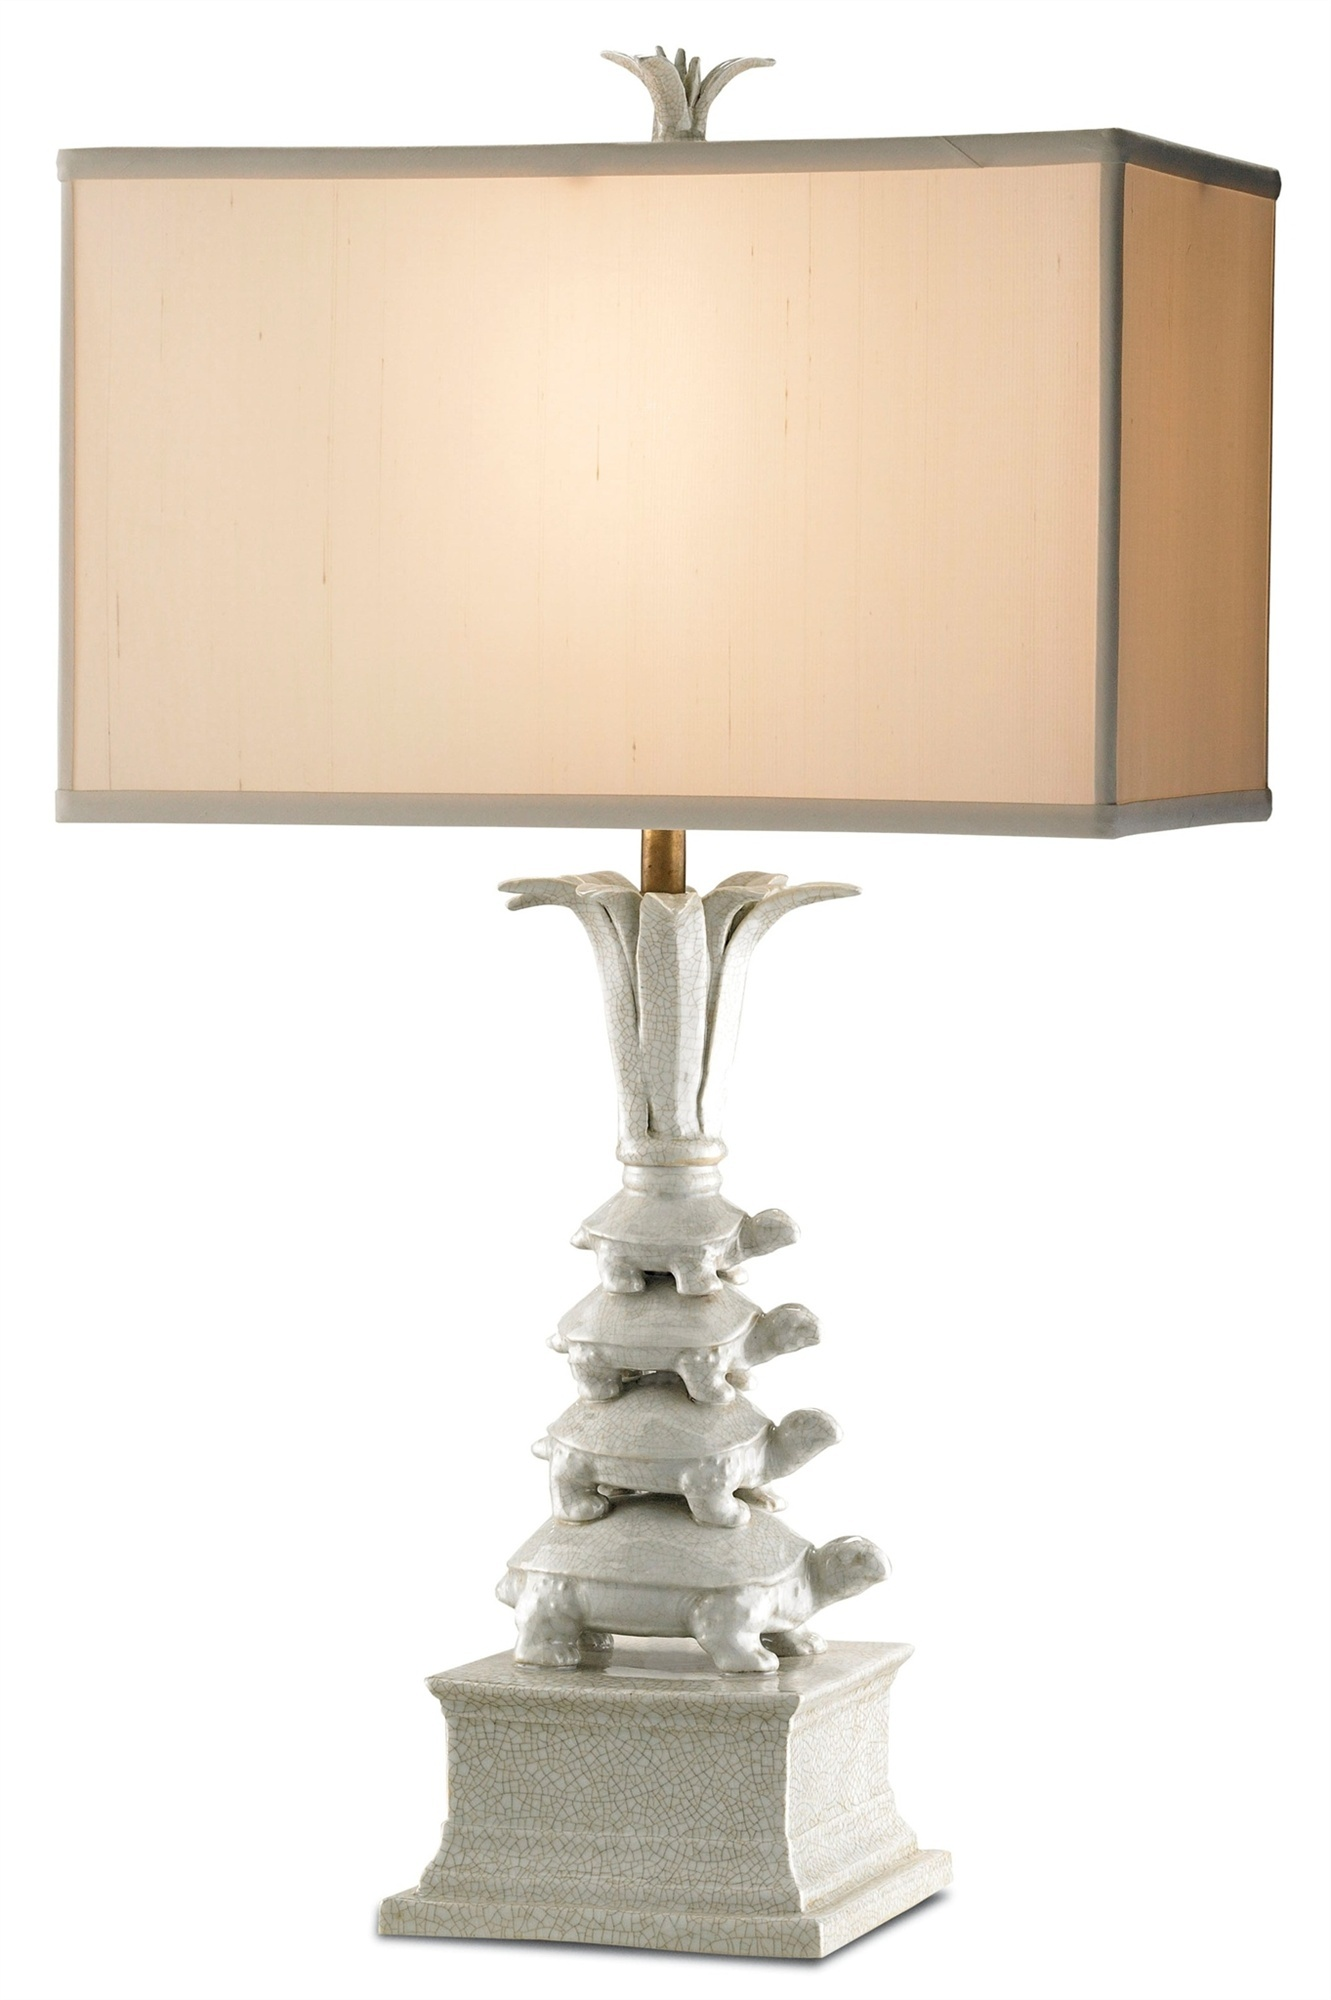 Whimsical Table Lamps The Best Choice For Your Bedside